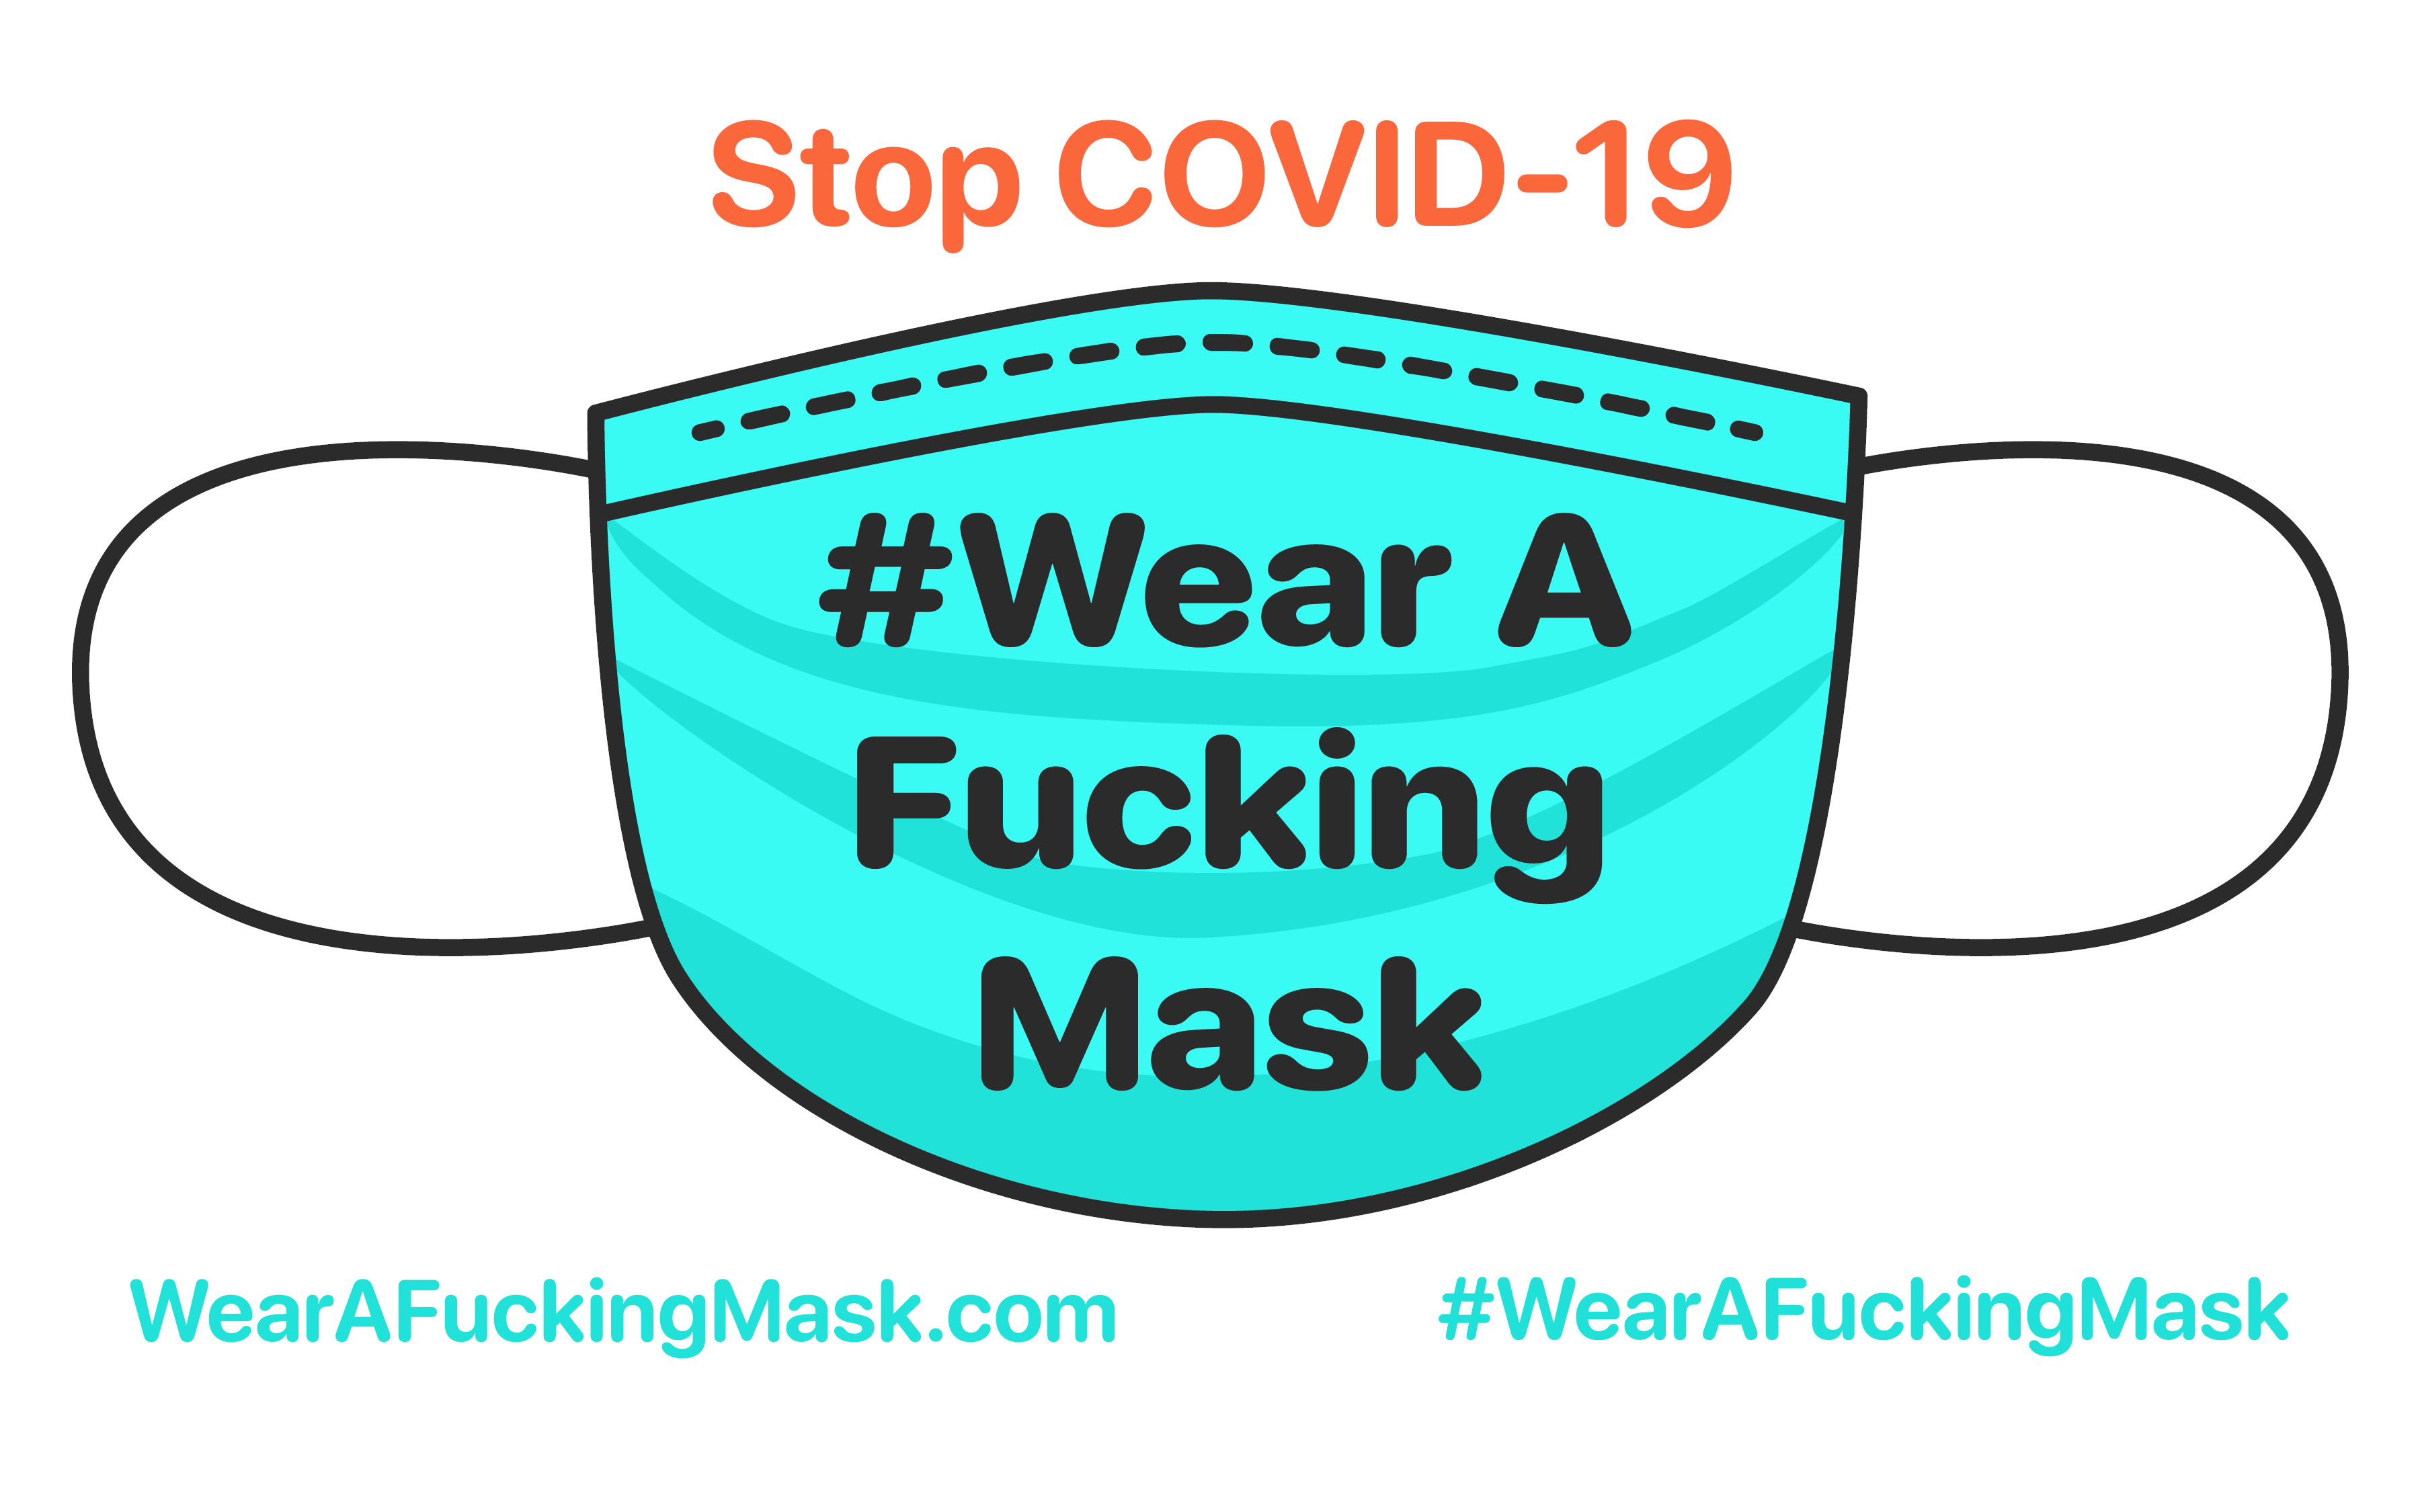 #WearAFuckingMask